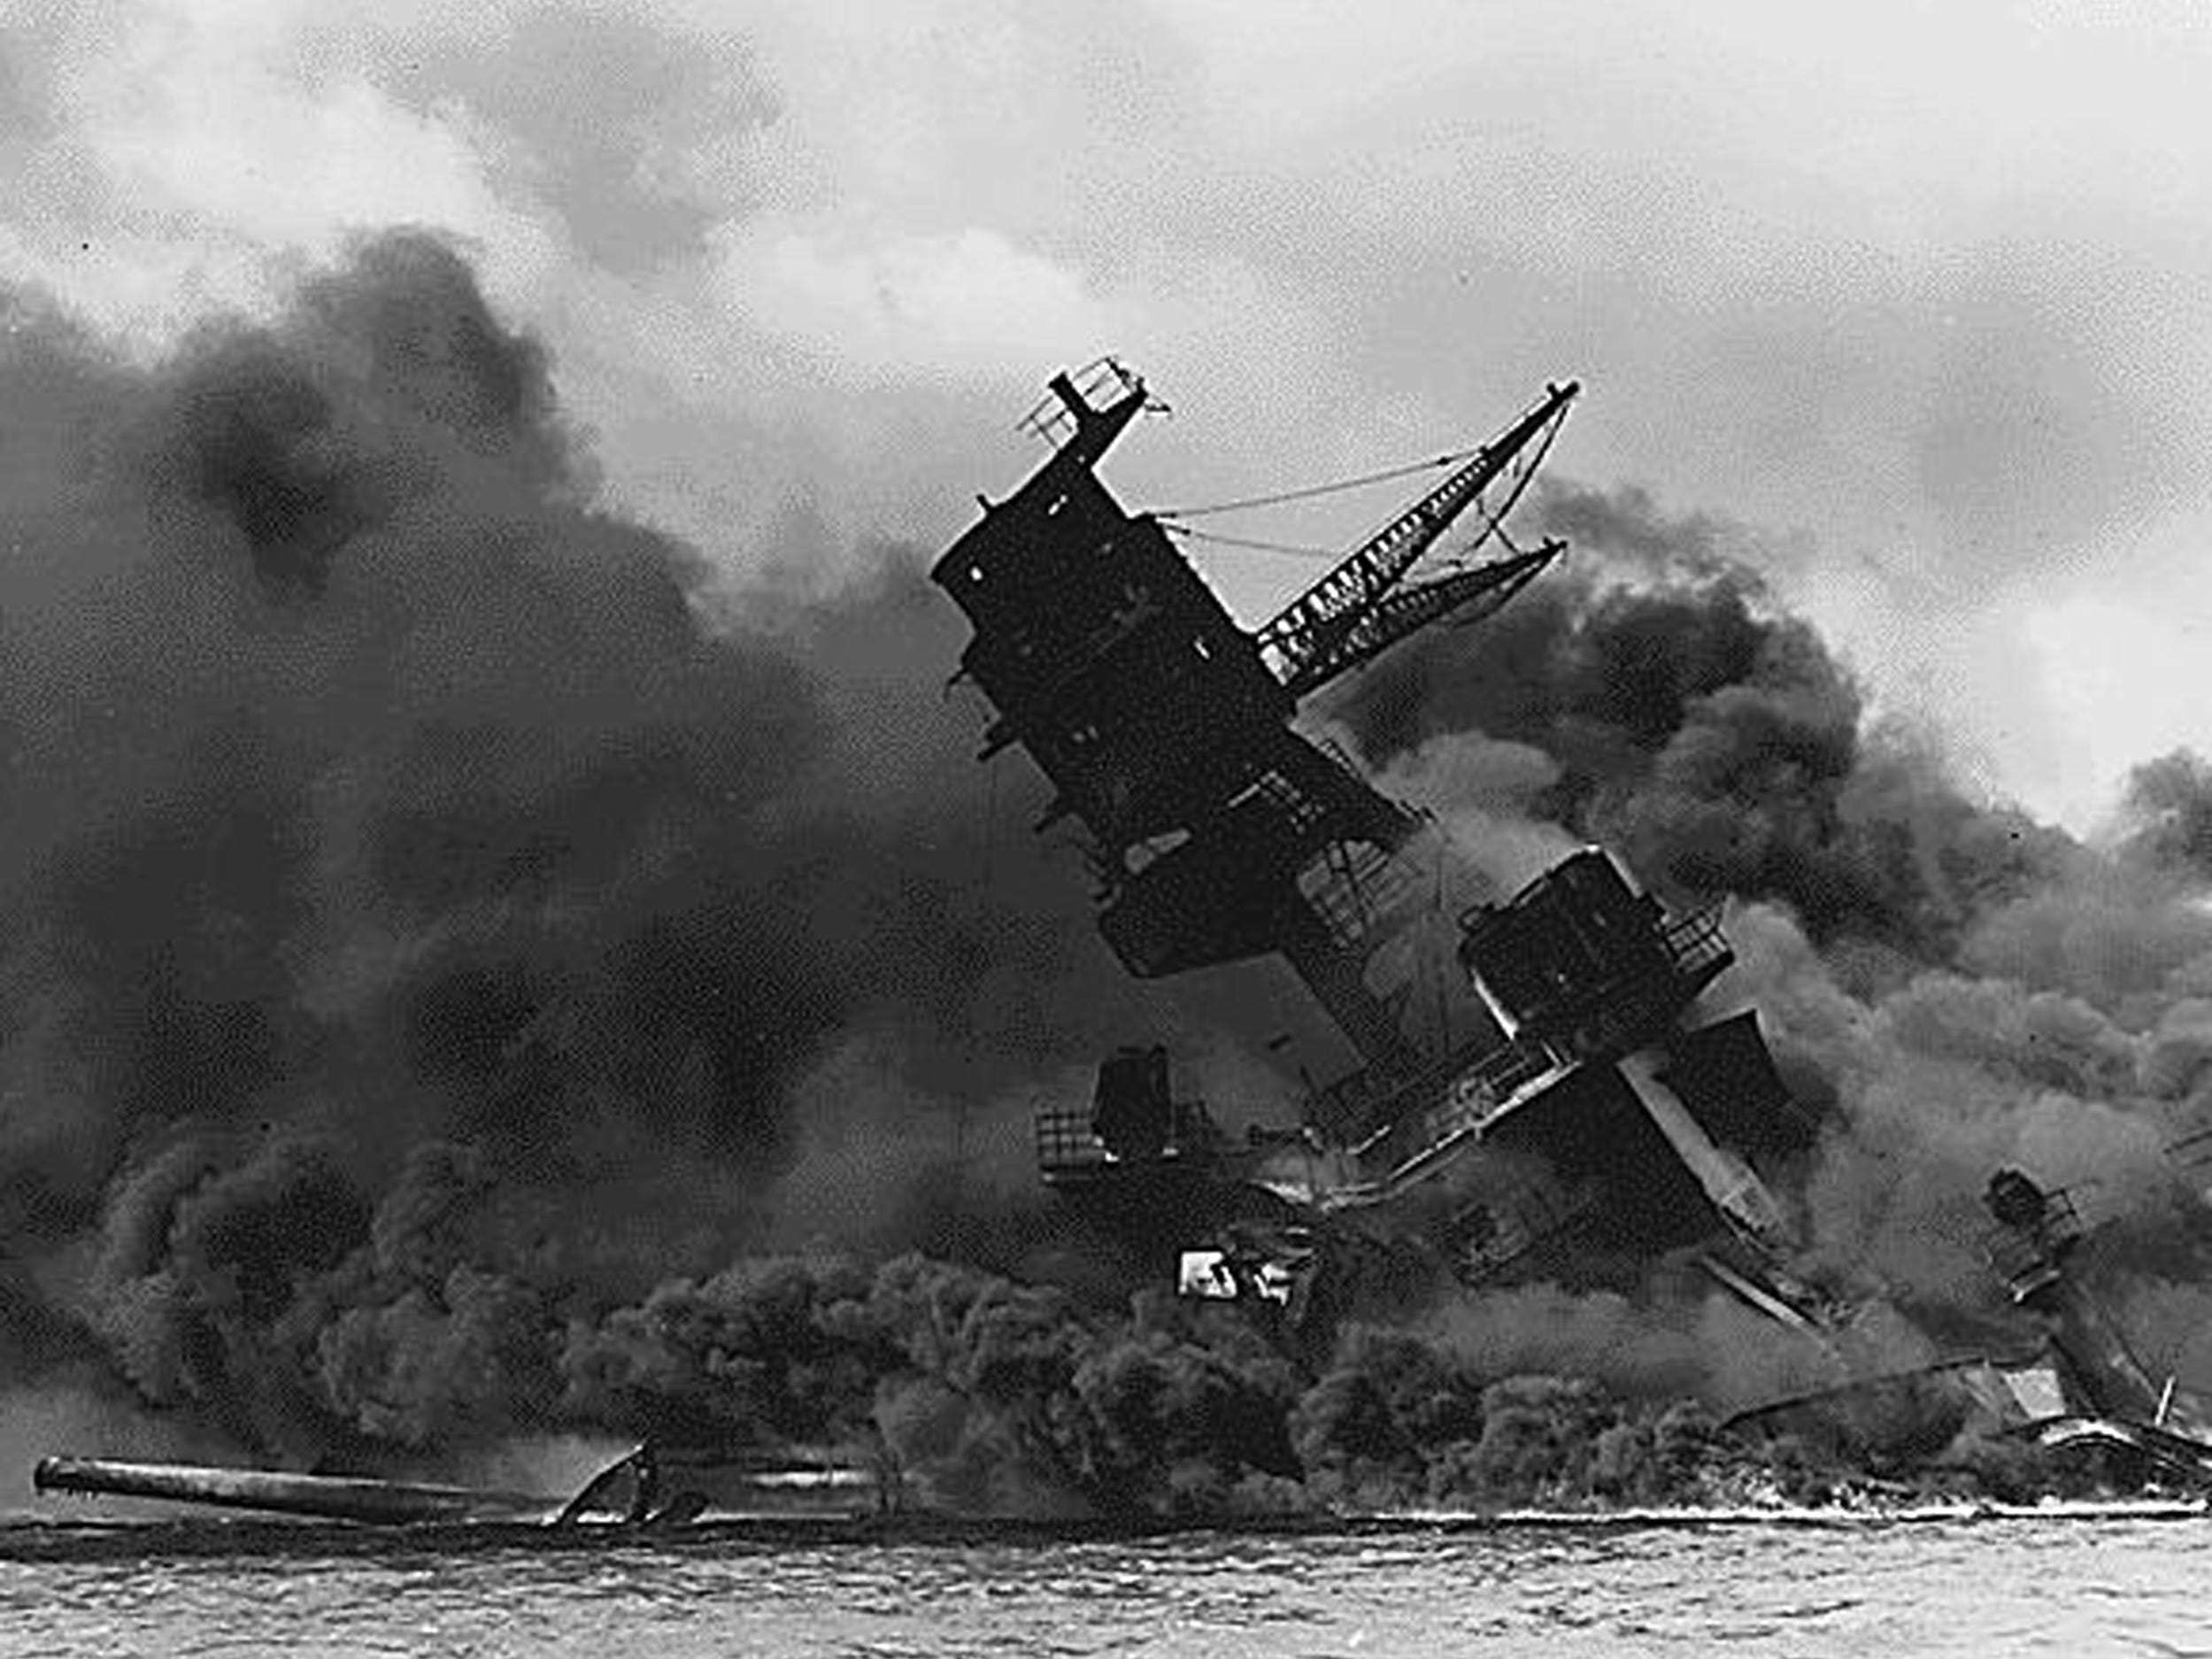 (FILES) This US Navy file image shows The USS Arizona afire and sinking after the Japanese attack on Pearl Harbor on December 7, 1941. The Arizona went down entombing 1,177 crewmembers. Seventy-five years after Japan's surprise attack on Pearl Harbor killed 2,403 Americans, a group of forensic scientists in Hawaii is still working to identify the remains of the dead. A jumble of skulls, bones and teeth deemed unidentifiable in the years following the devastating attack are now being linked to missing sailors and Marines, thanks to advances in DNA testing. / AFP PHOTO / US NAVY / HO / RESTRICTED TO EDITORIAL USE - MANDATORY CREDIT AFP PHOTO /US NAVY  - NO MARKETING - NO ADVERTISING CAMPAIGNS - DISTRIBUTED AS A SERVICE TO CLIENTSHO/AFP/Getty Images